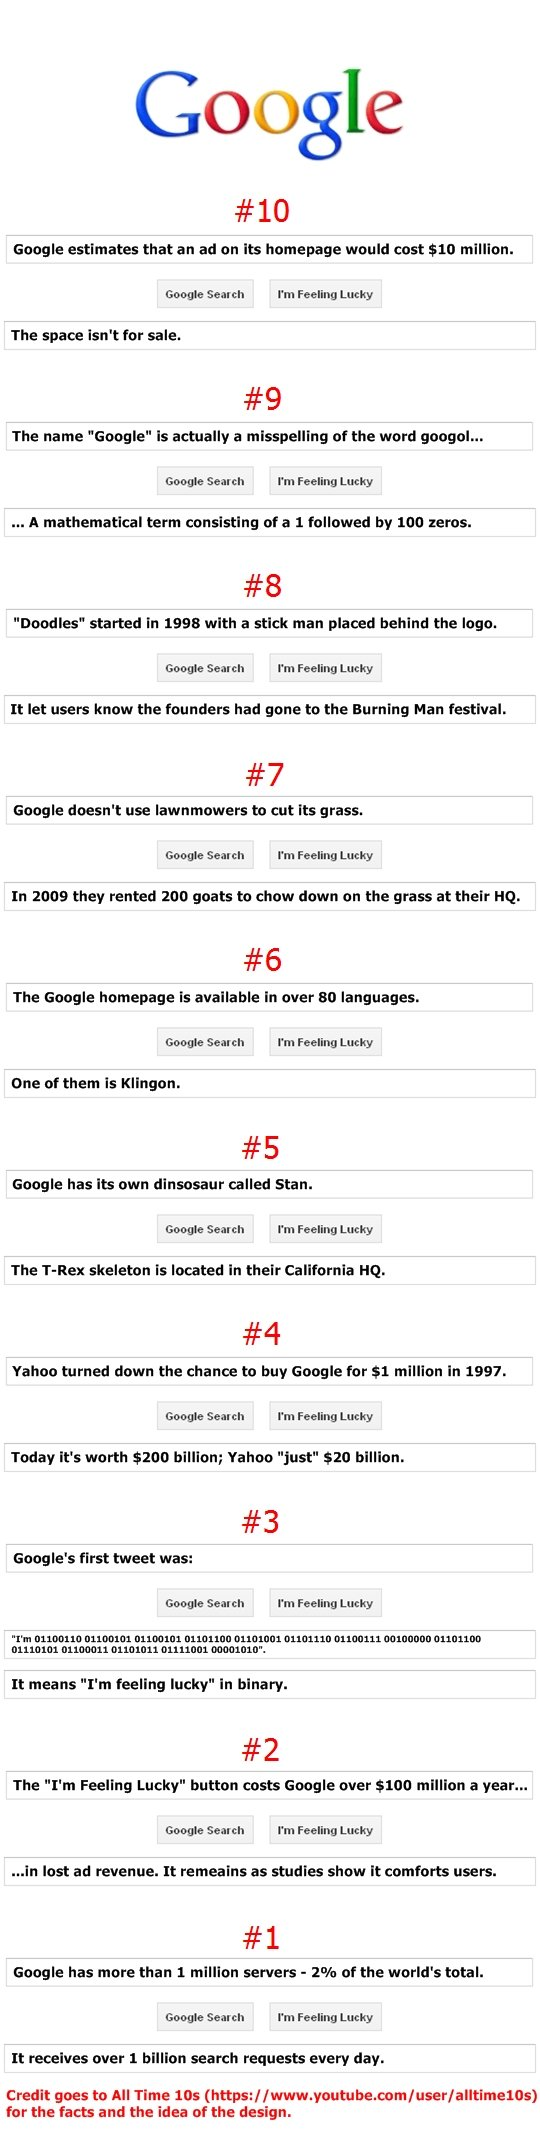 6 amazing facts about working at Google